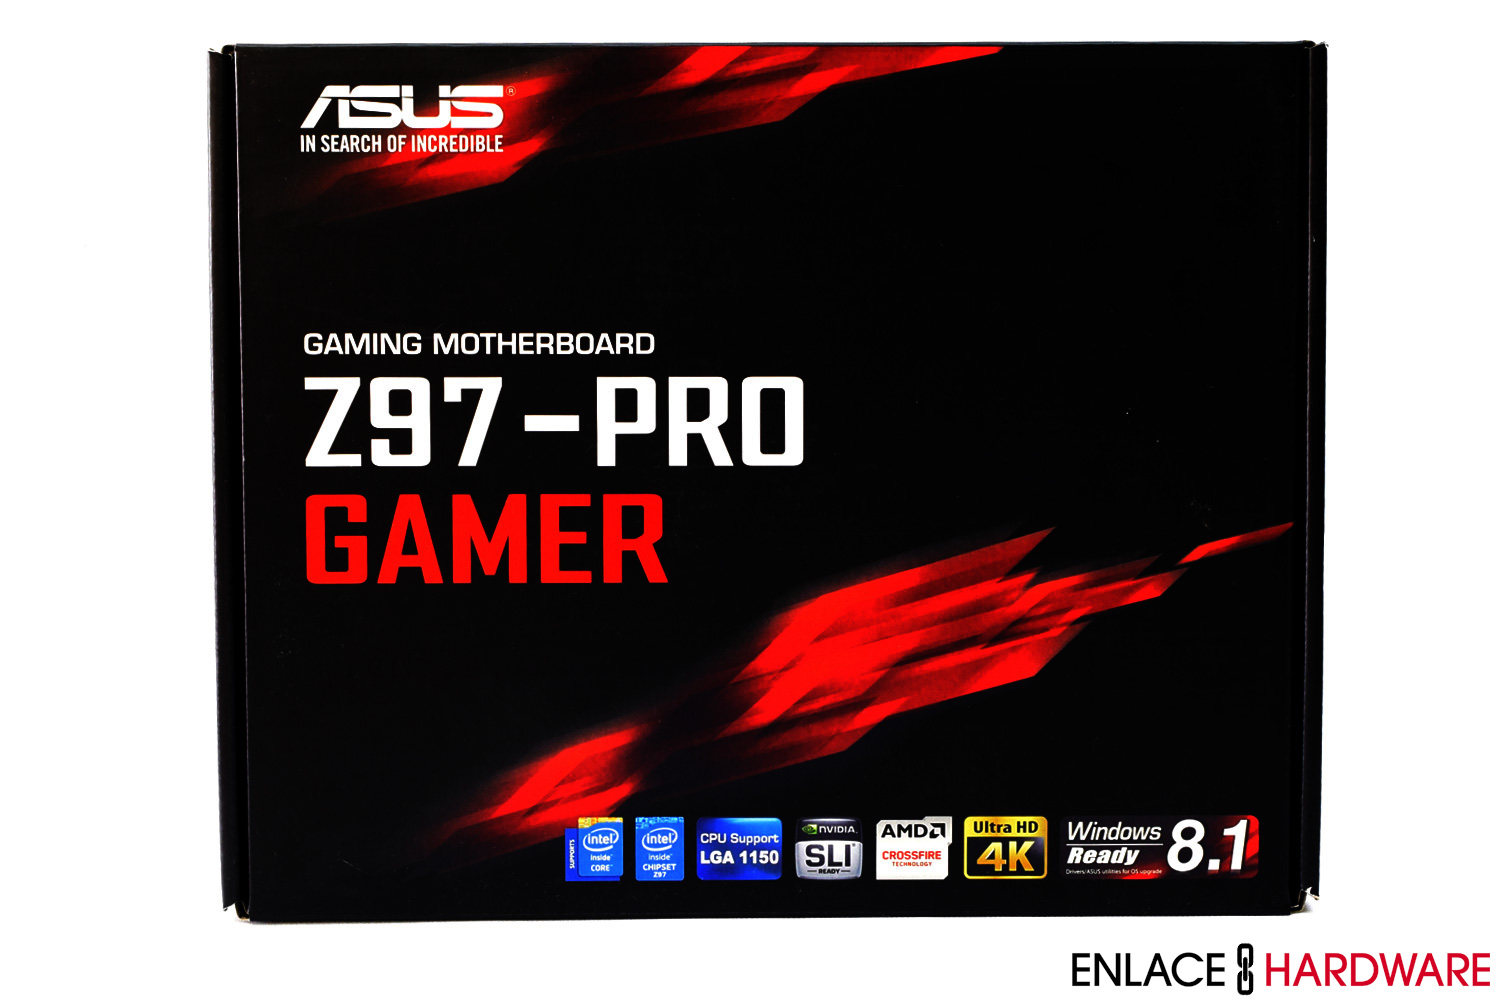 ASUS-Z97-Pro-Gamer-Review-2